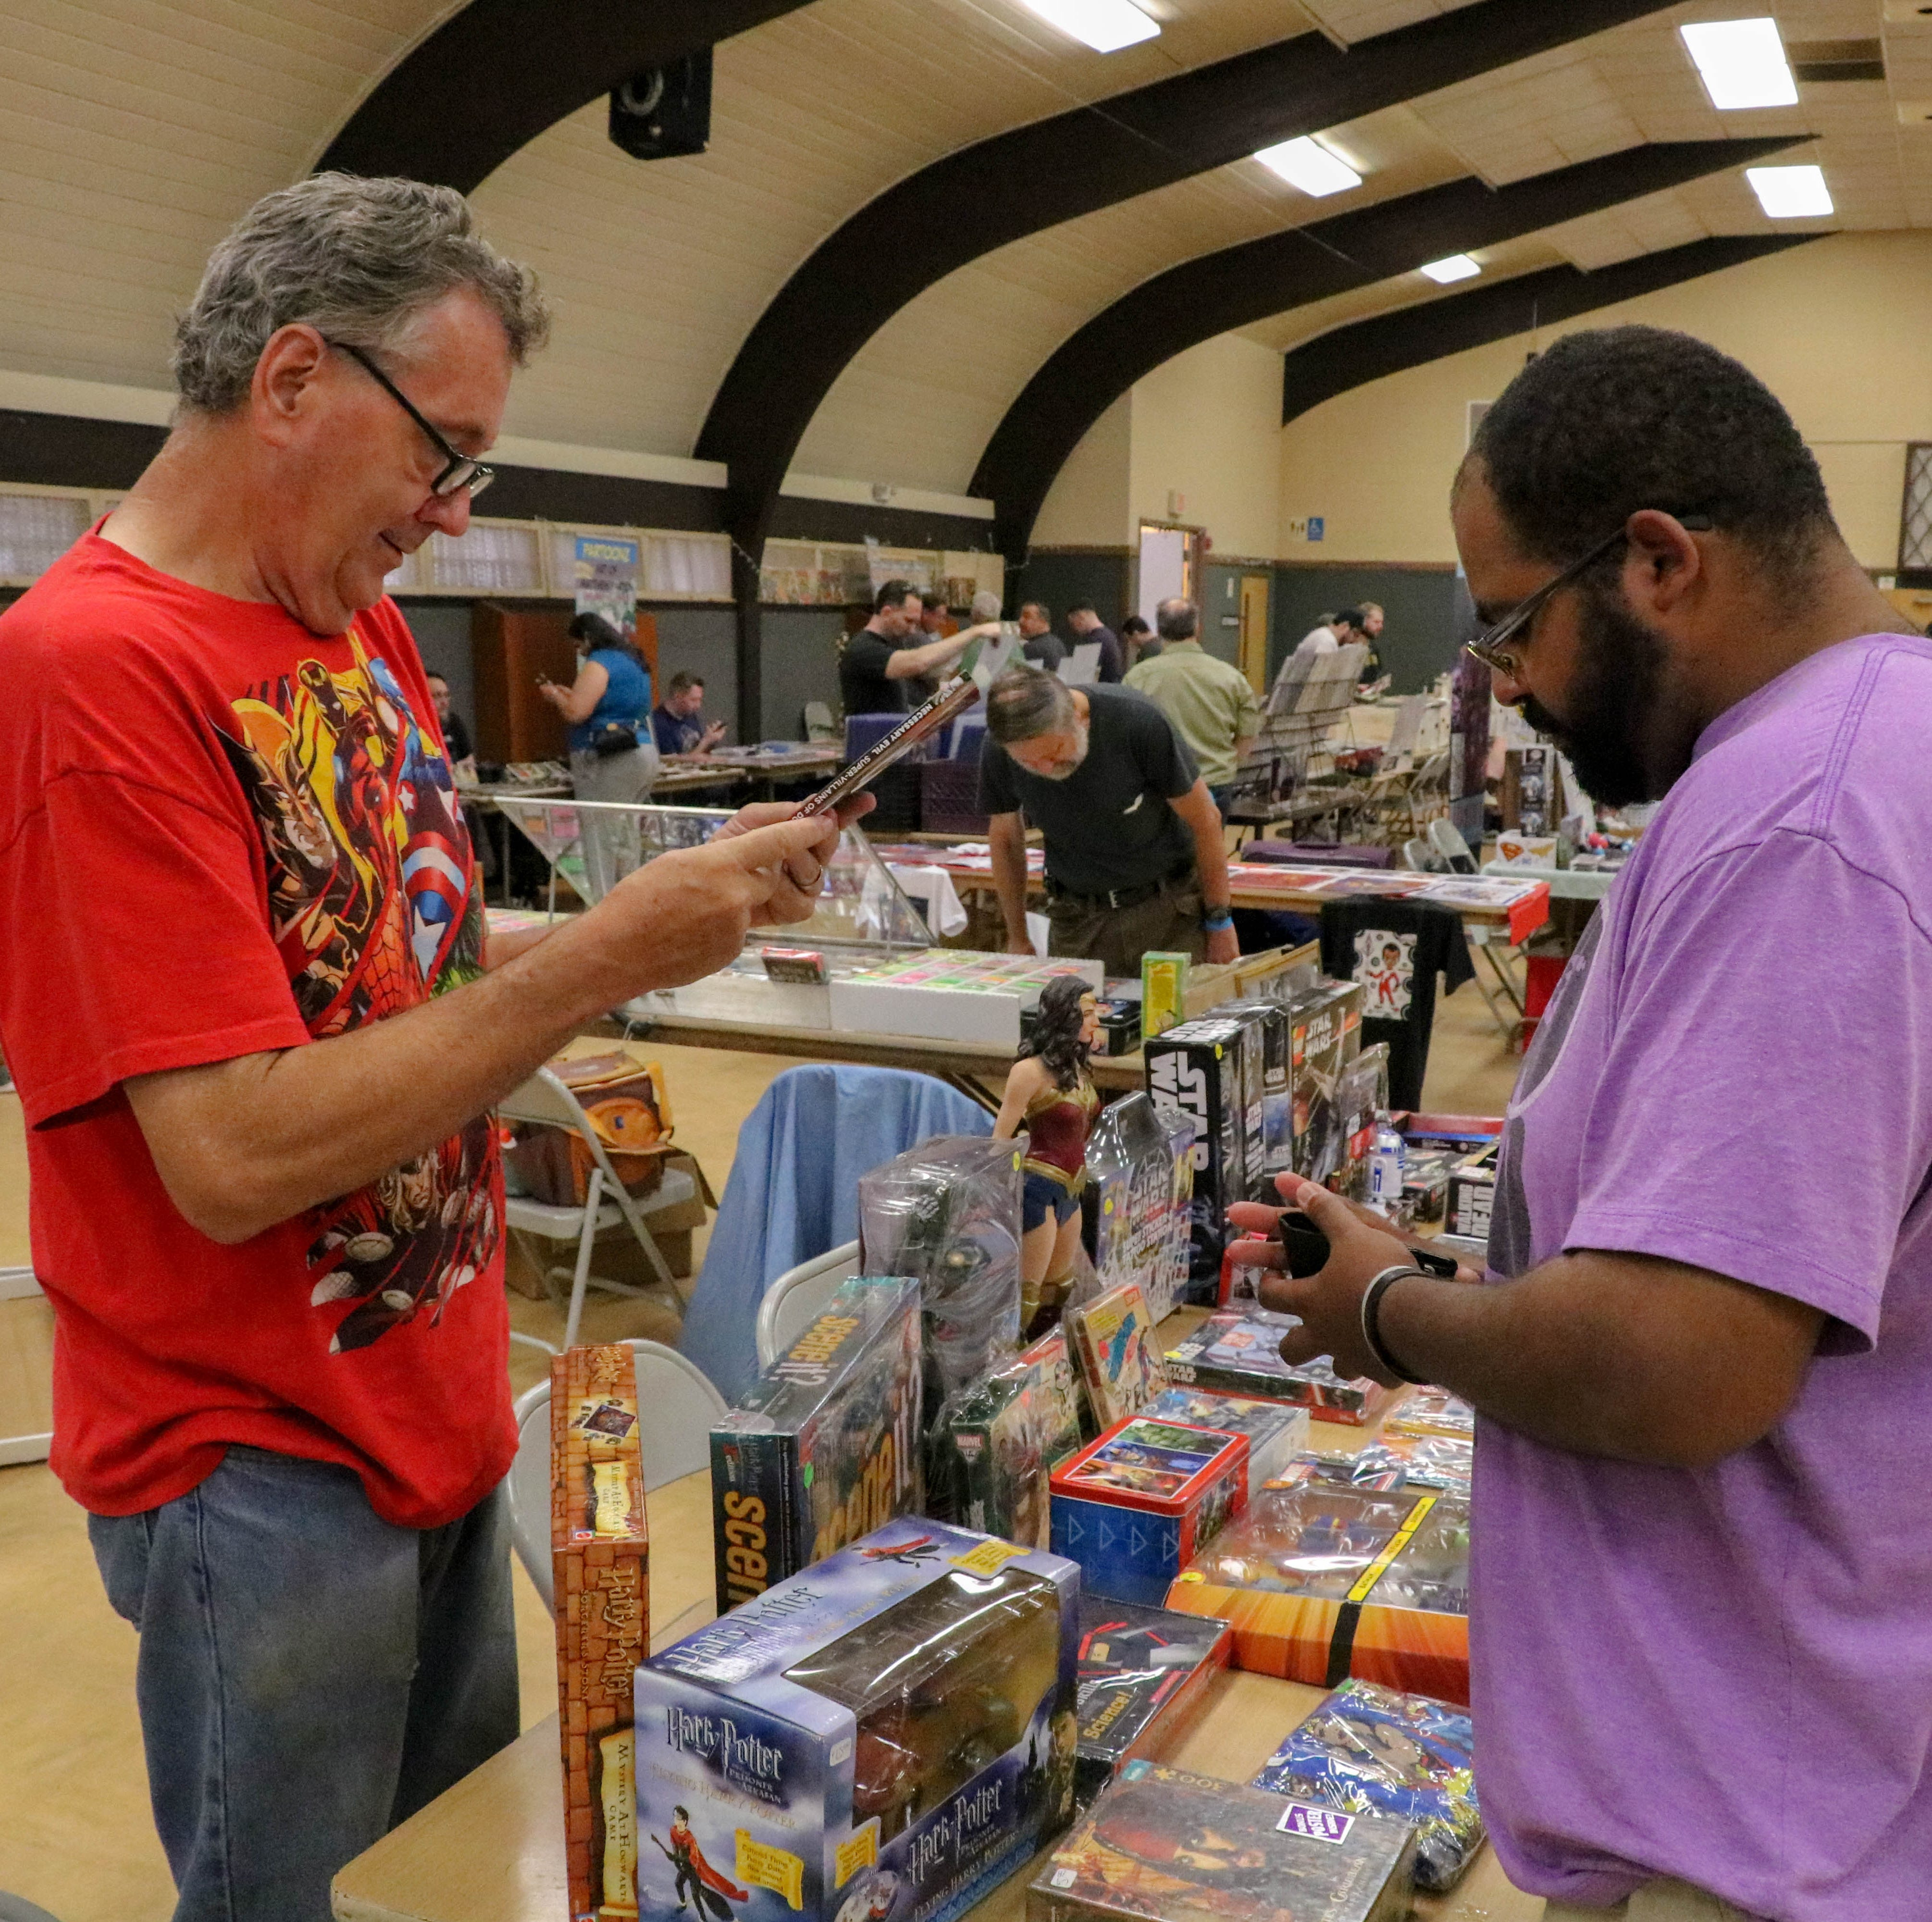 Rah-Con comic book show returns to Rahway on Saturday